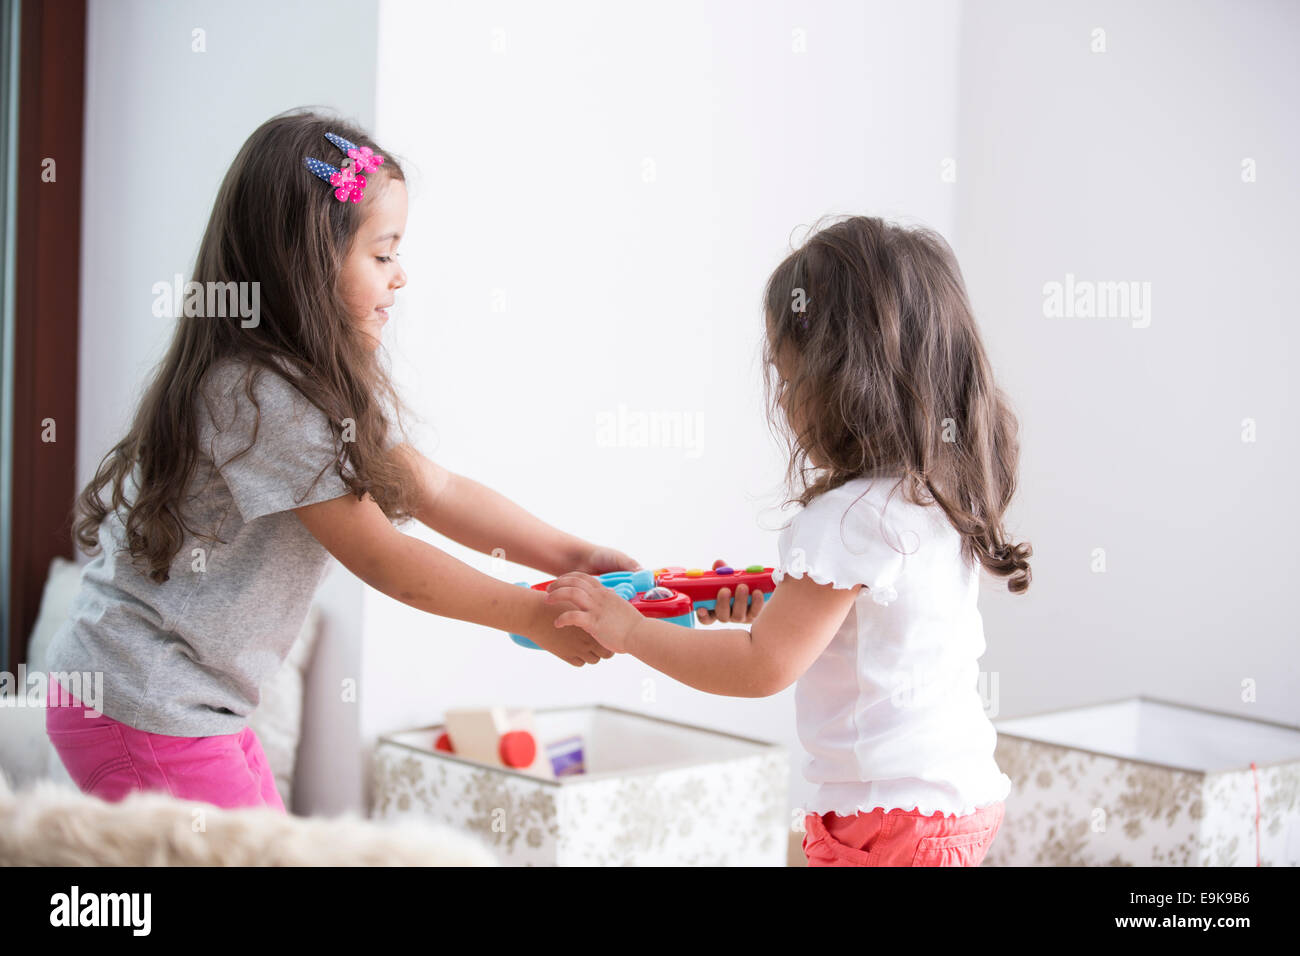 Side view of sisters fighting for toy guitar at home - Stock Image